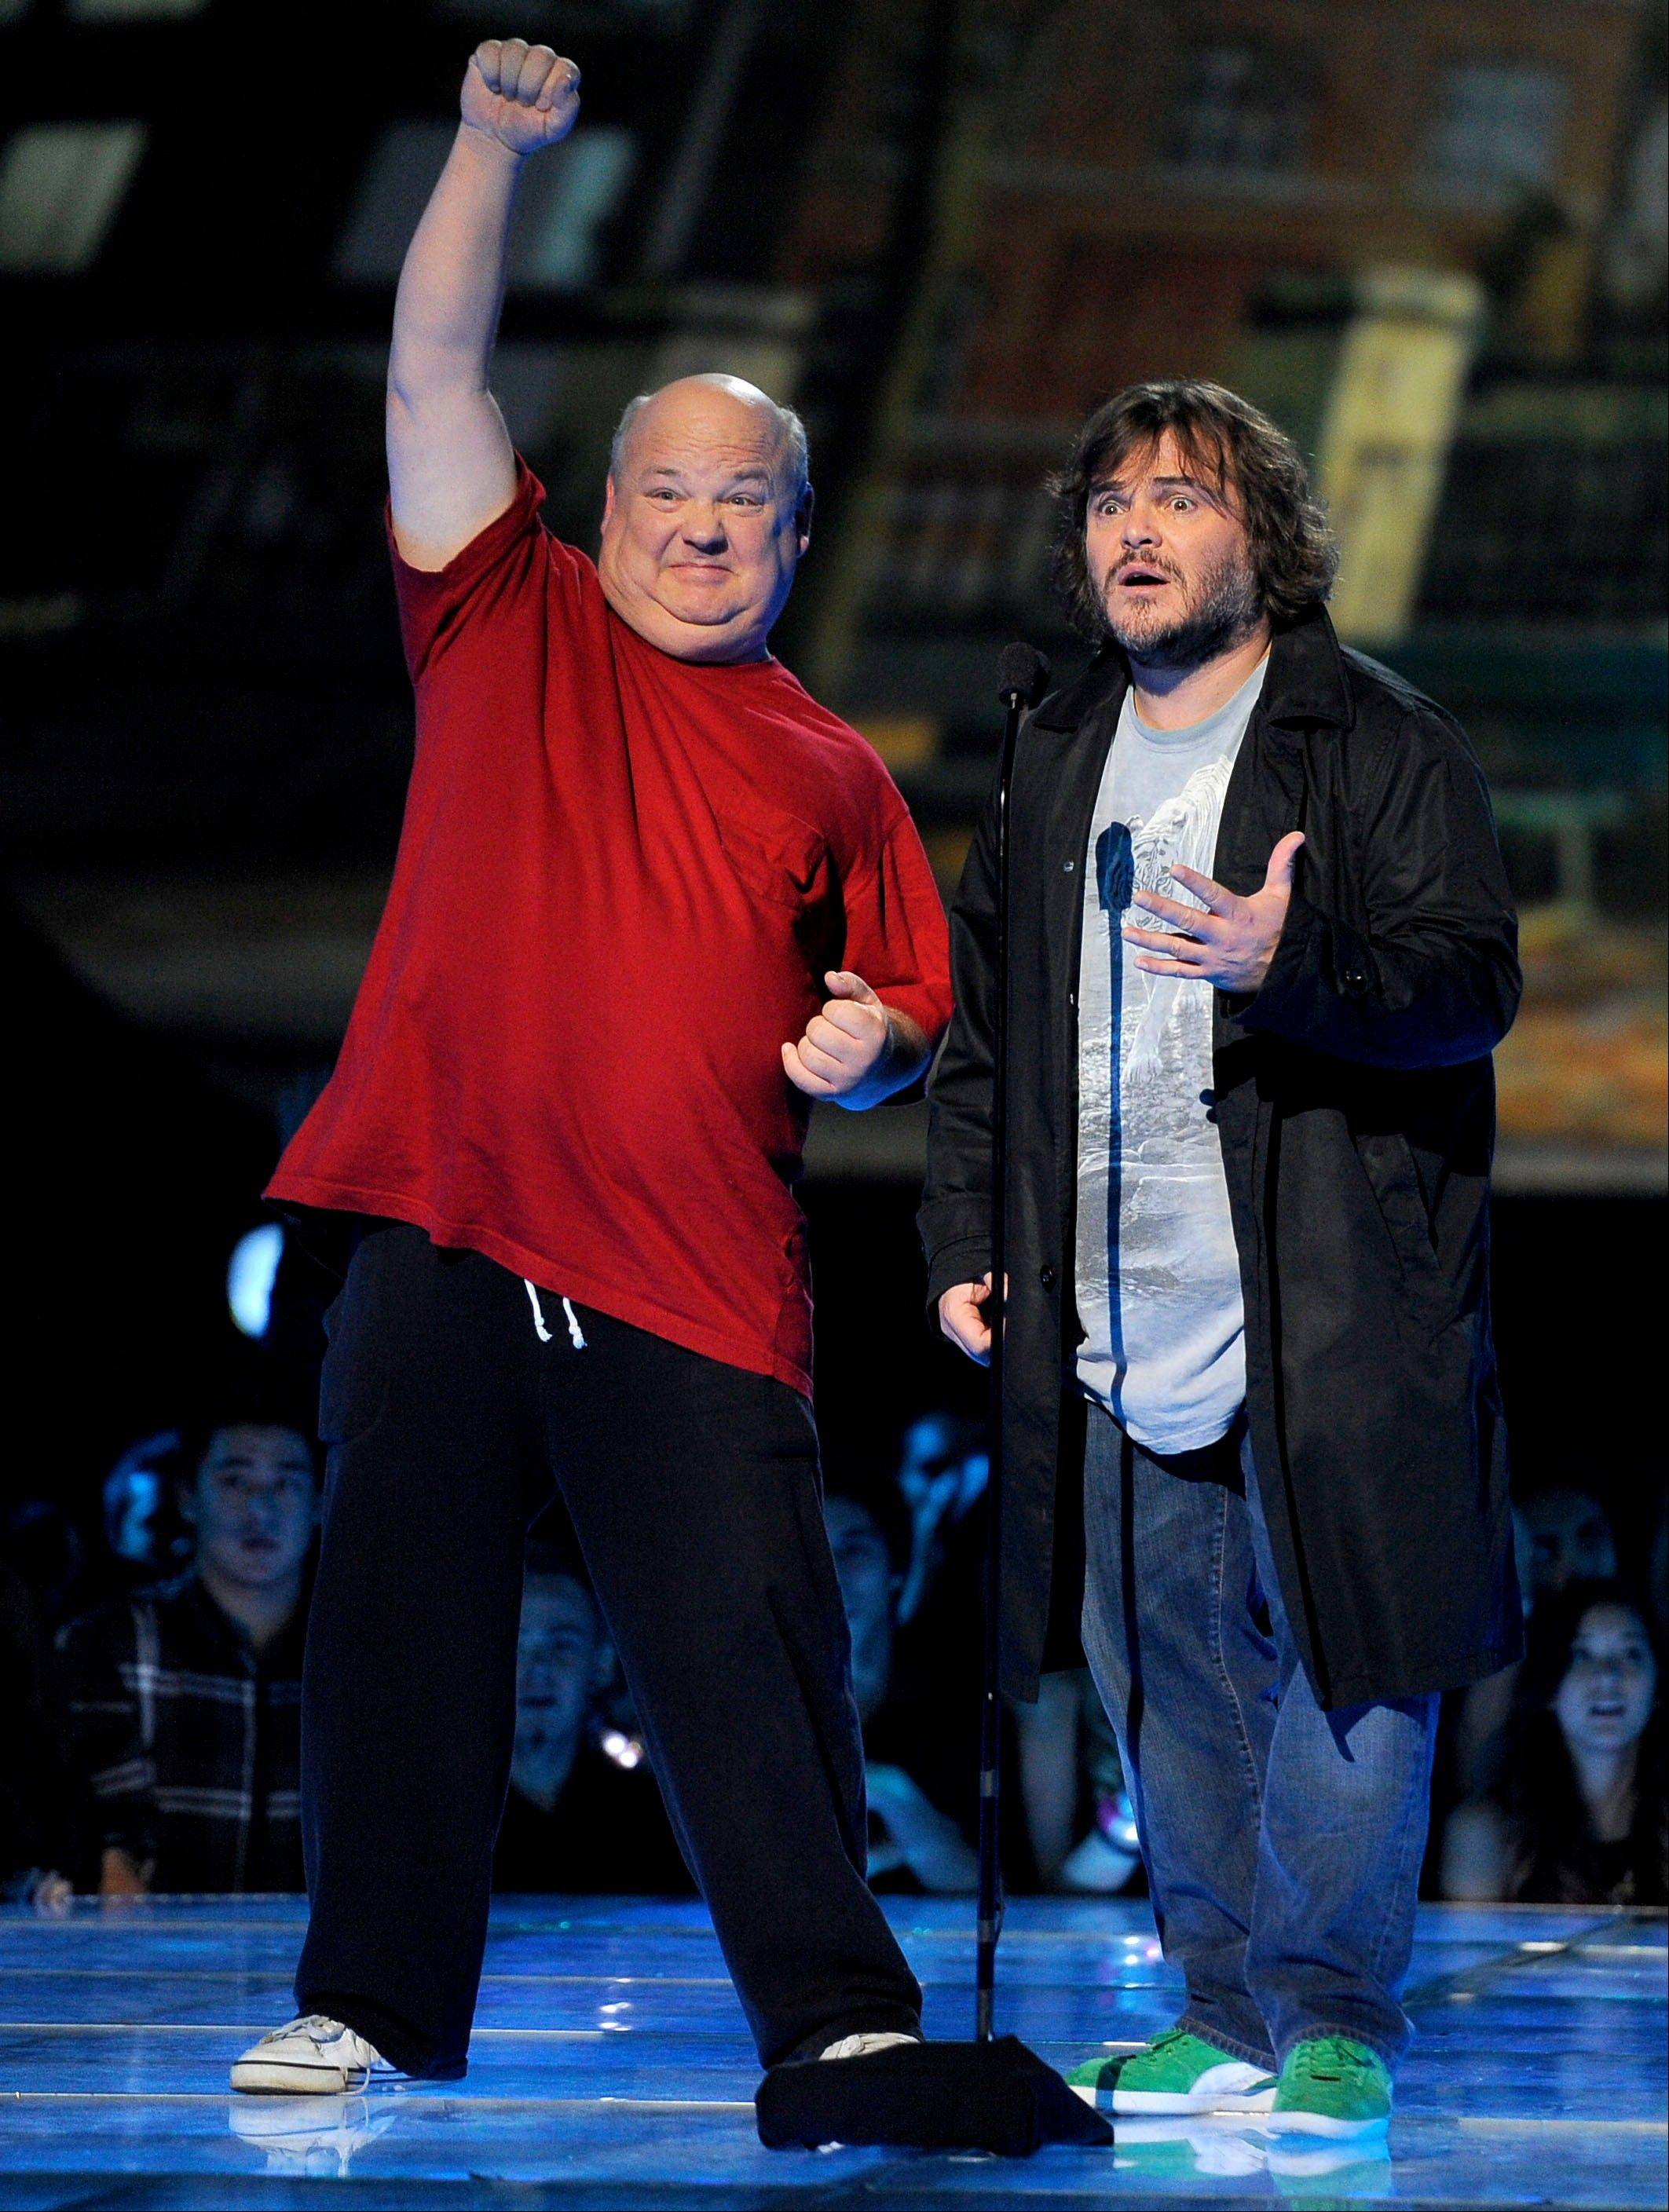 Kyle Gass, left, and Jack Black, of musical duo Tenacious D, present an award Friday at Spike's 10th Annual Video Game Awards.